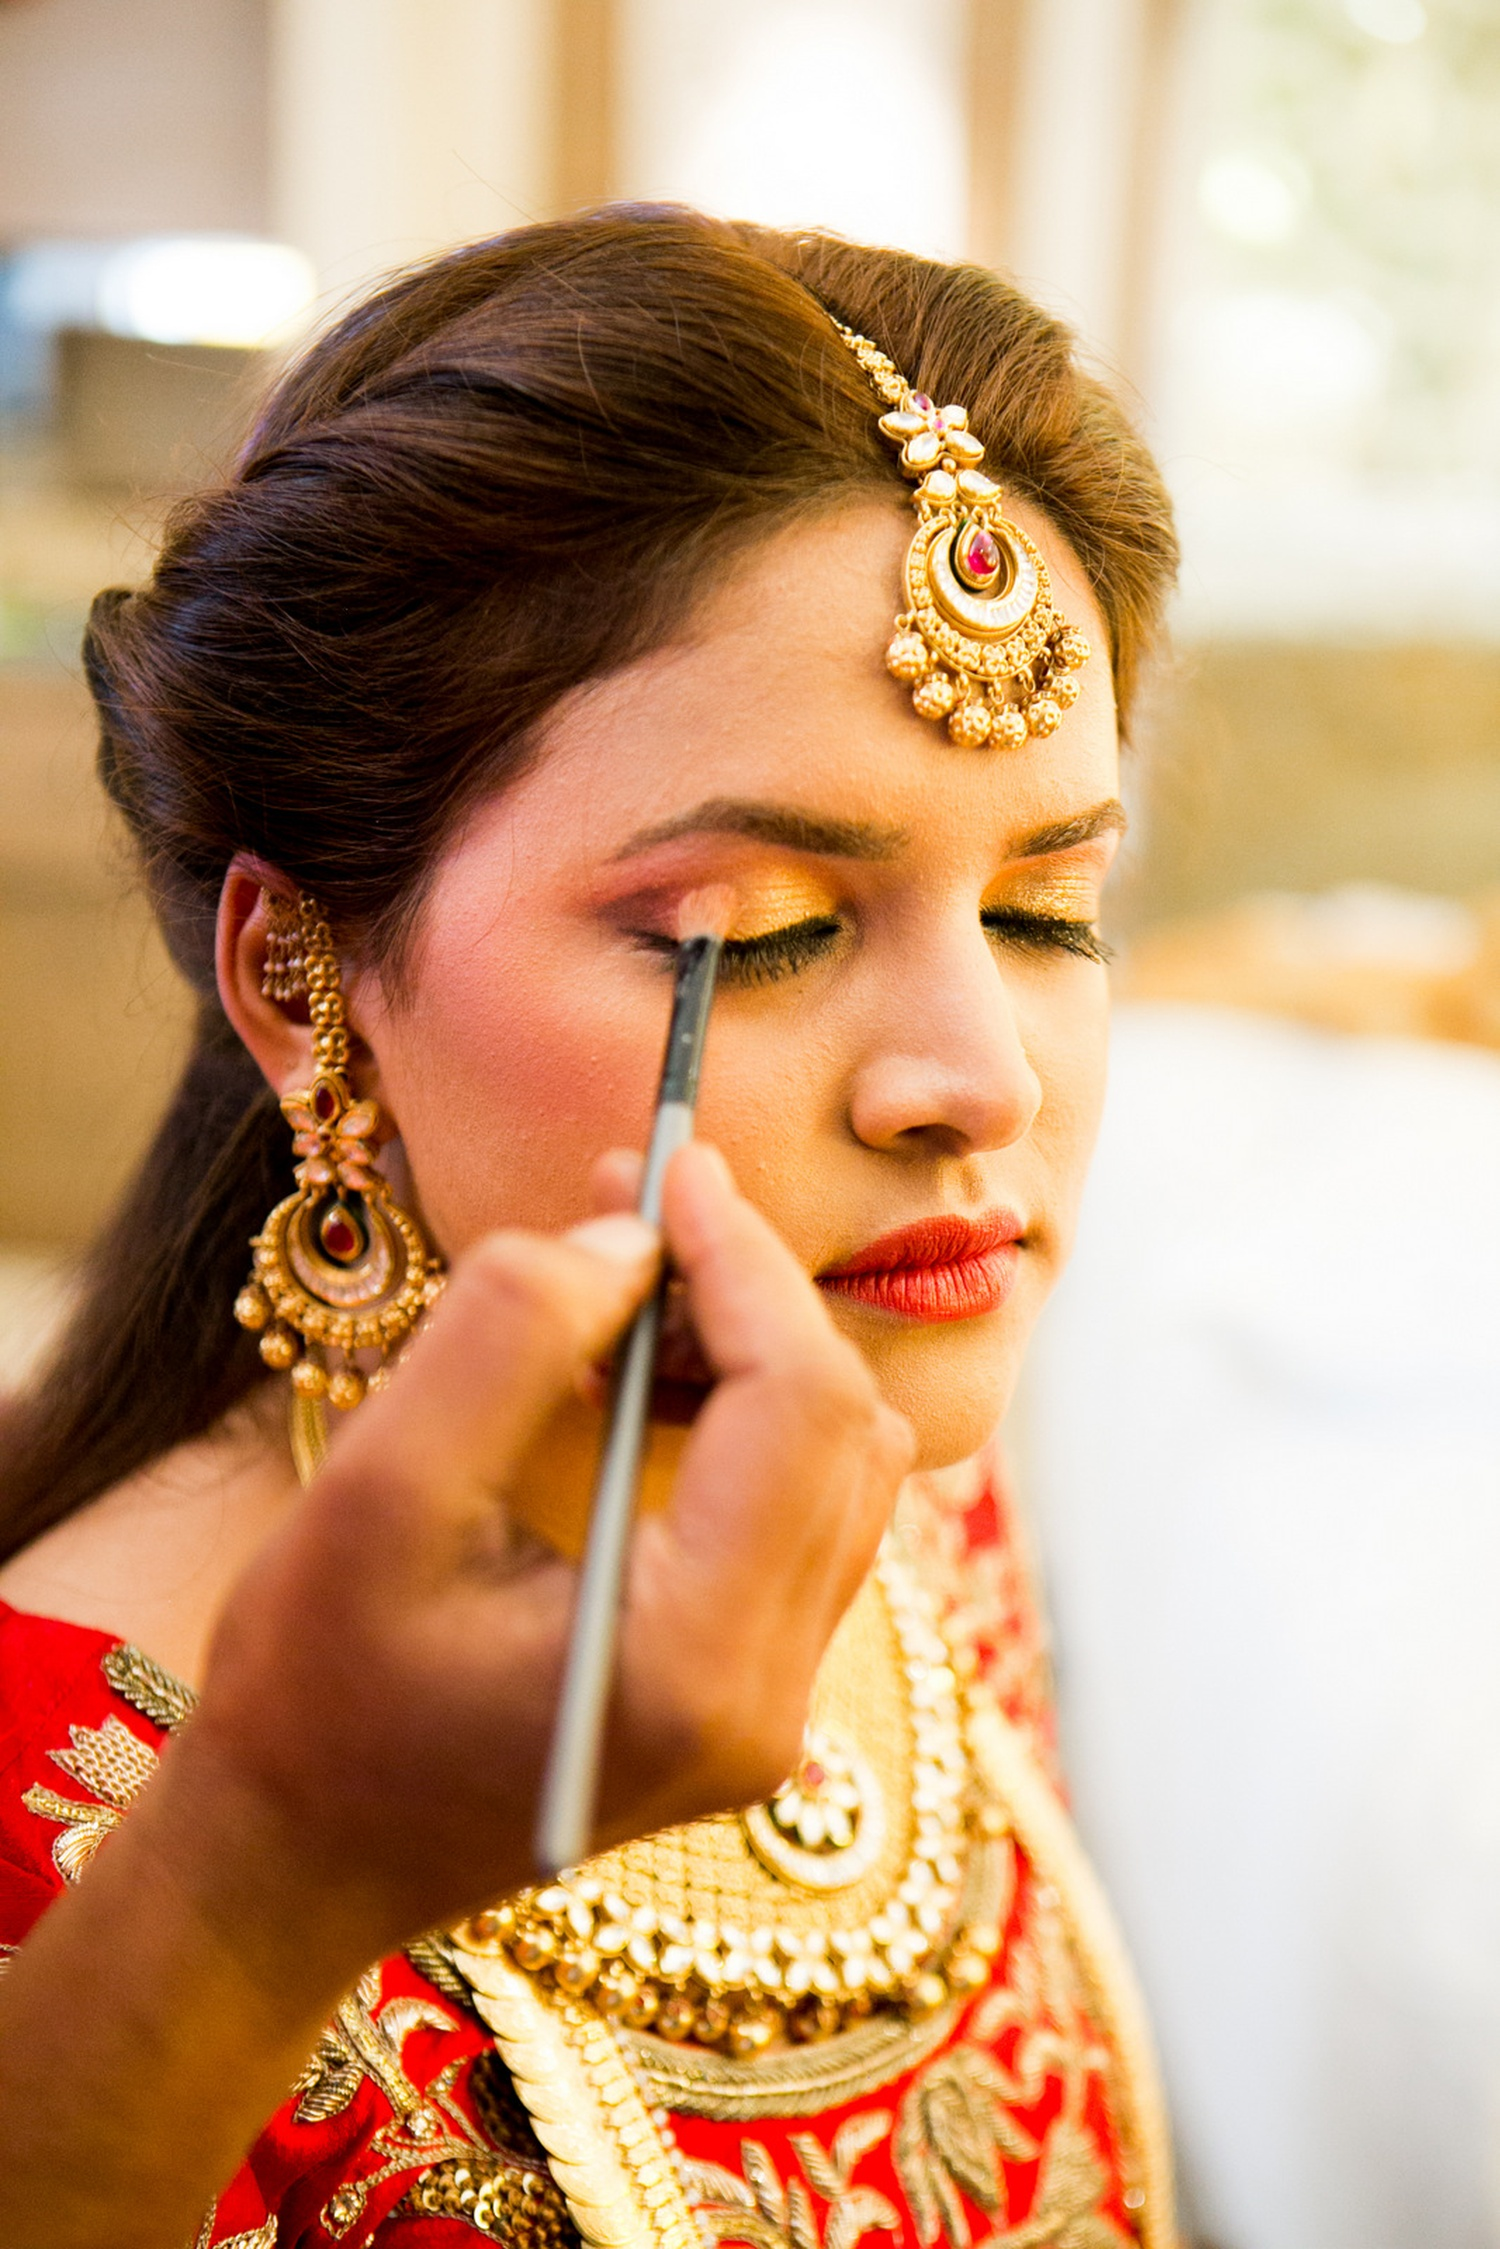 Queens Bridal Bridal Makeup Artist In Bangalore | WeddingZ